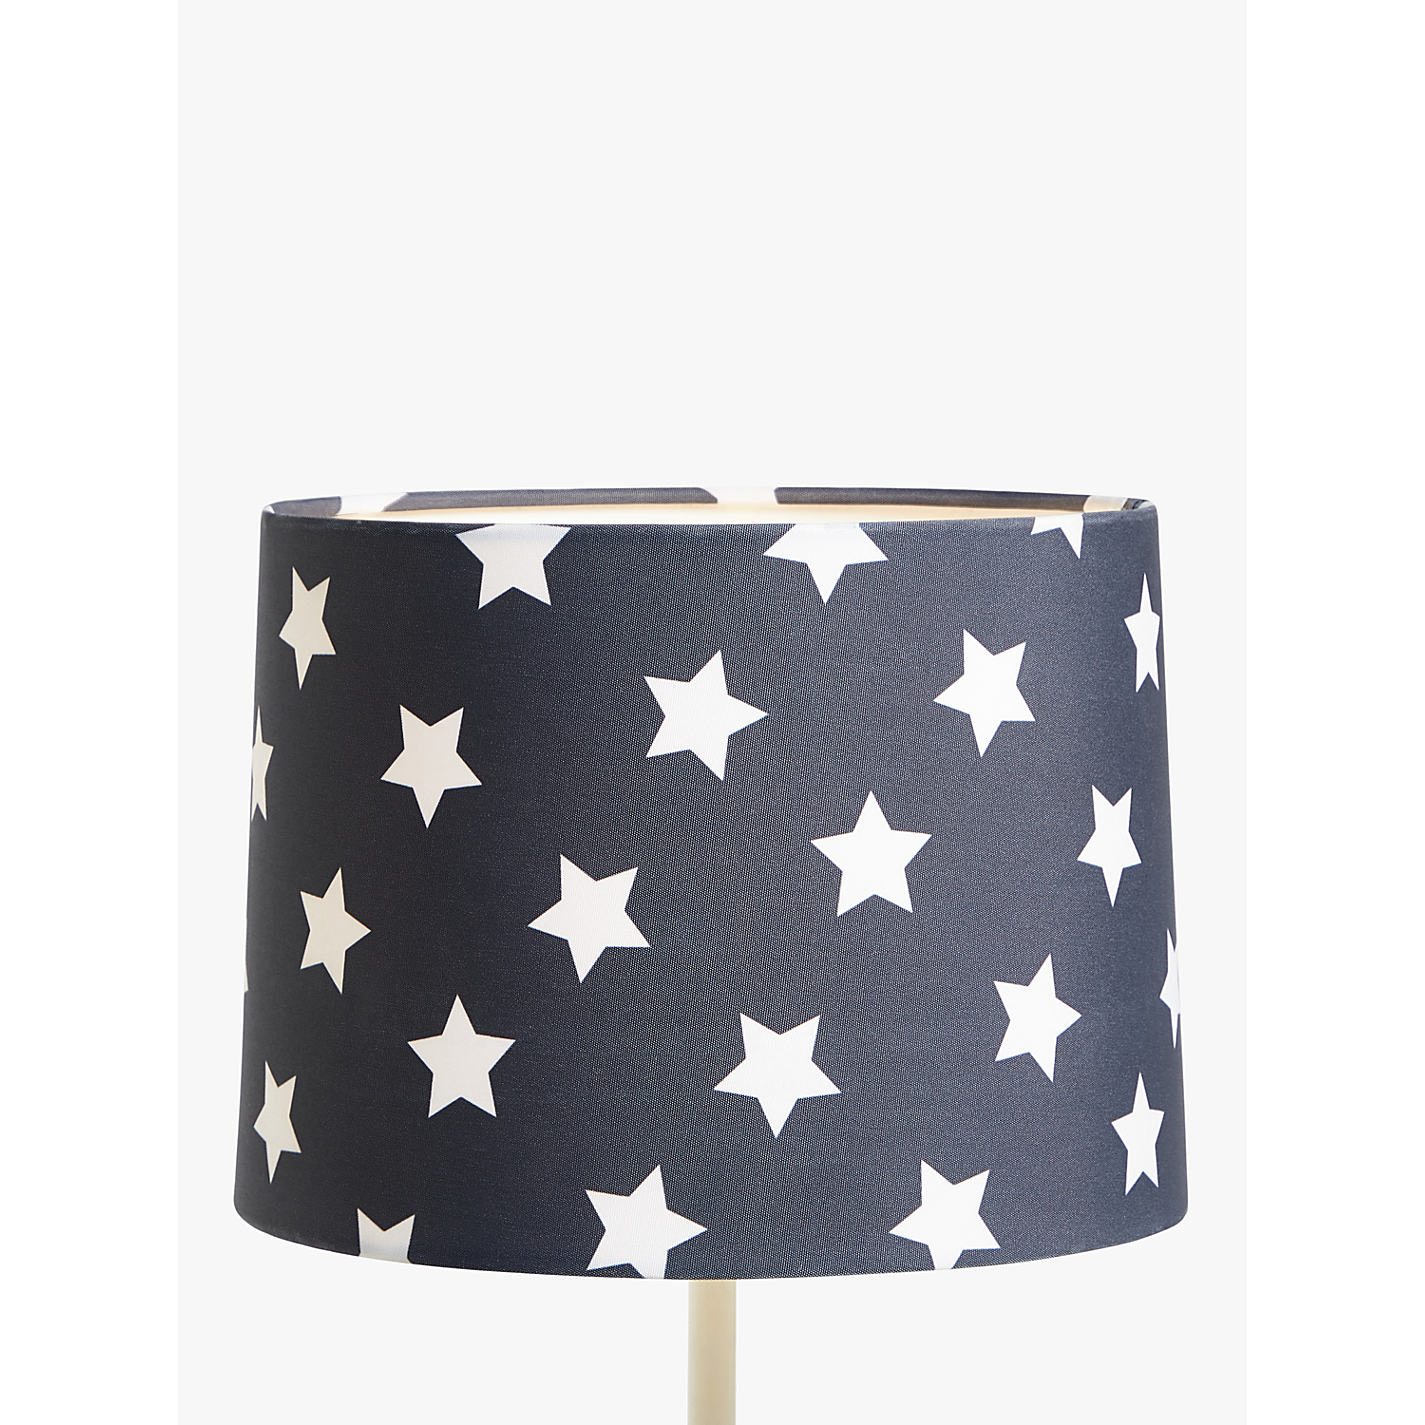 Lampshades childrens lighting john lewis buy little home at john lewis star lampshade navy online at johnlewis mozeypictures Images